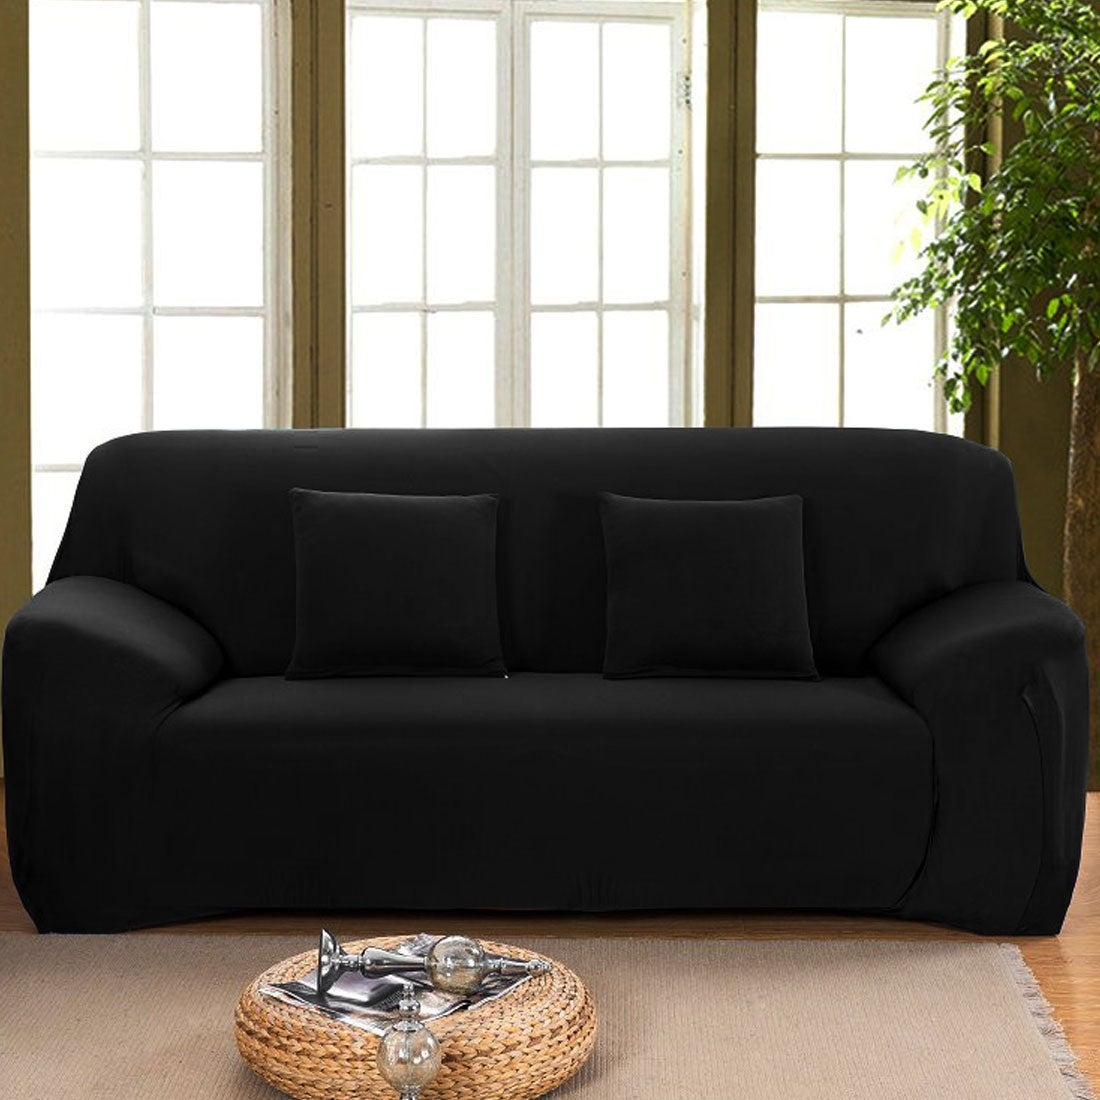 Buy Sofa Couch Slipcovers Online At Overstock Our Best